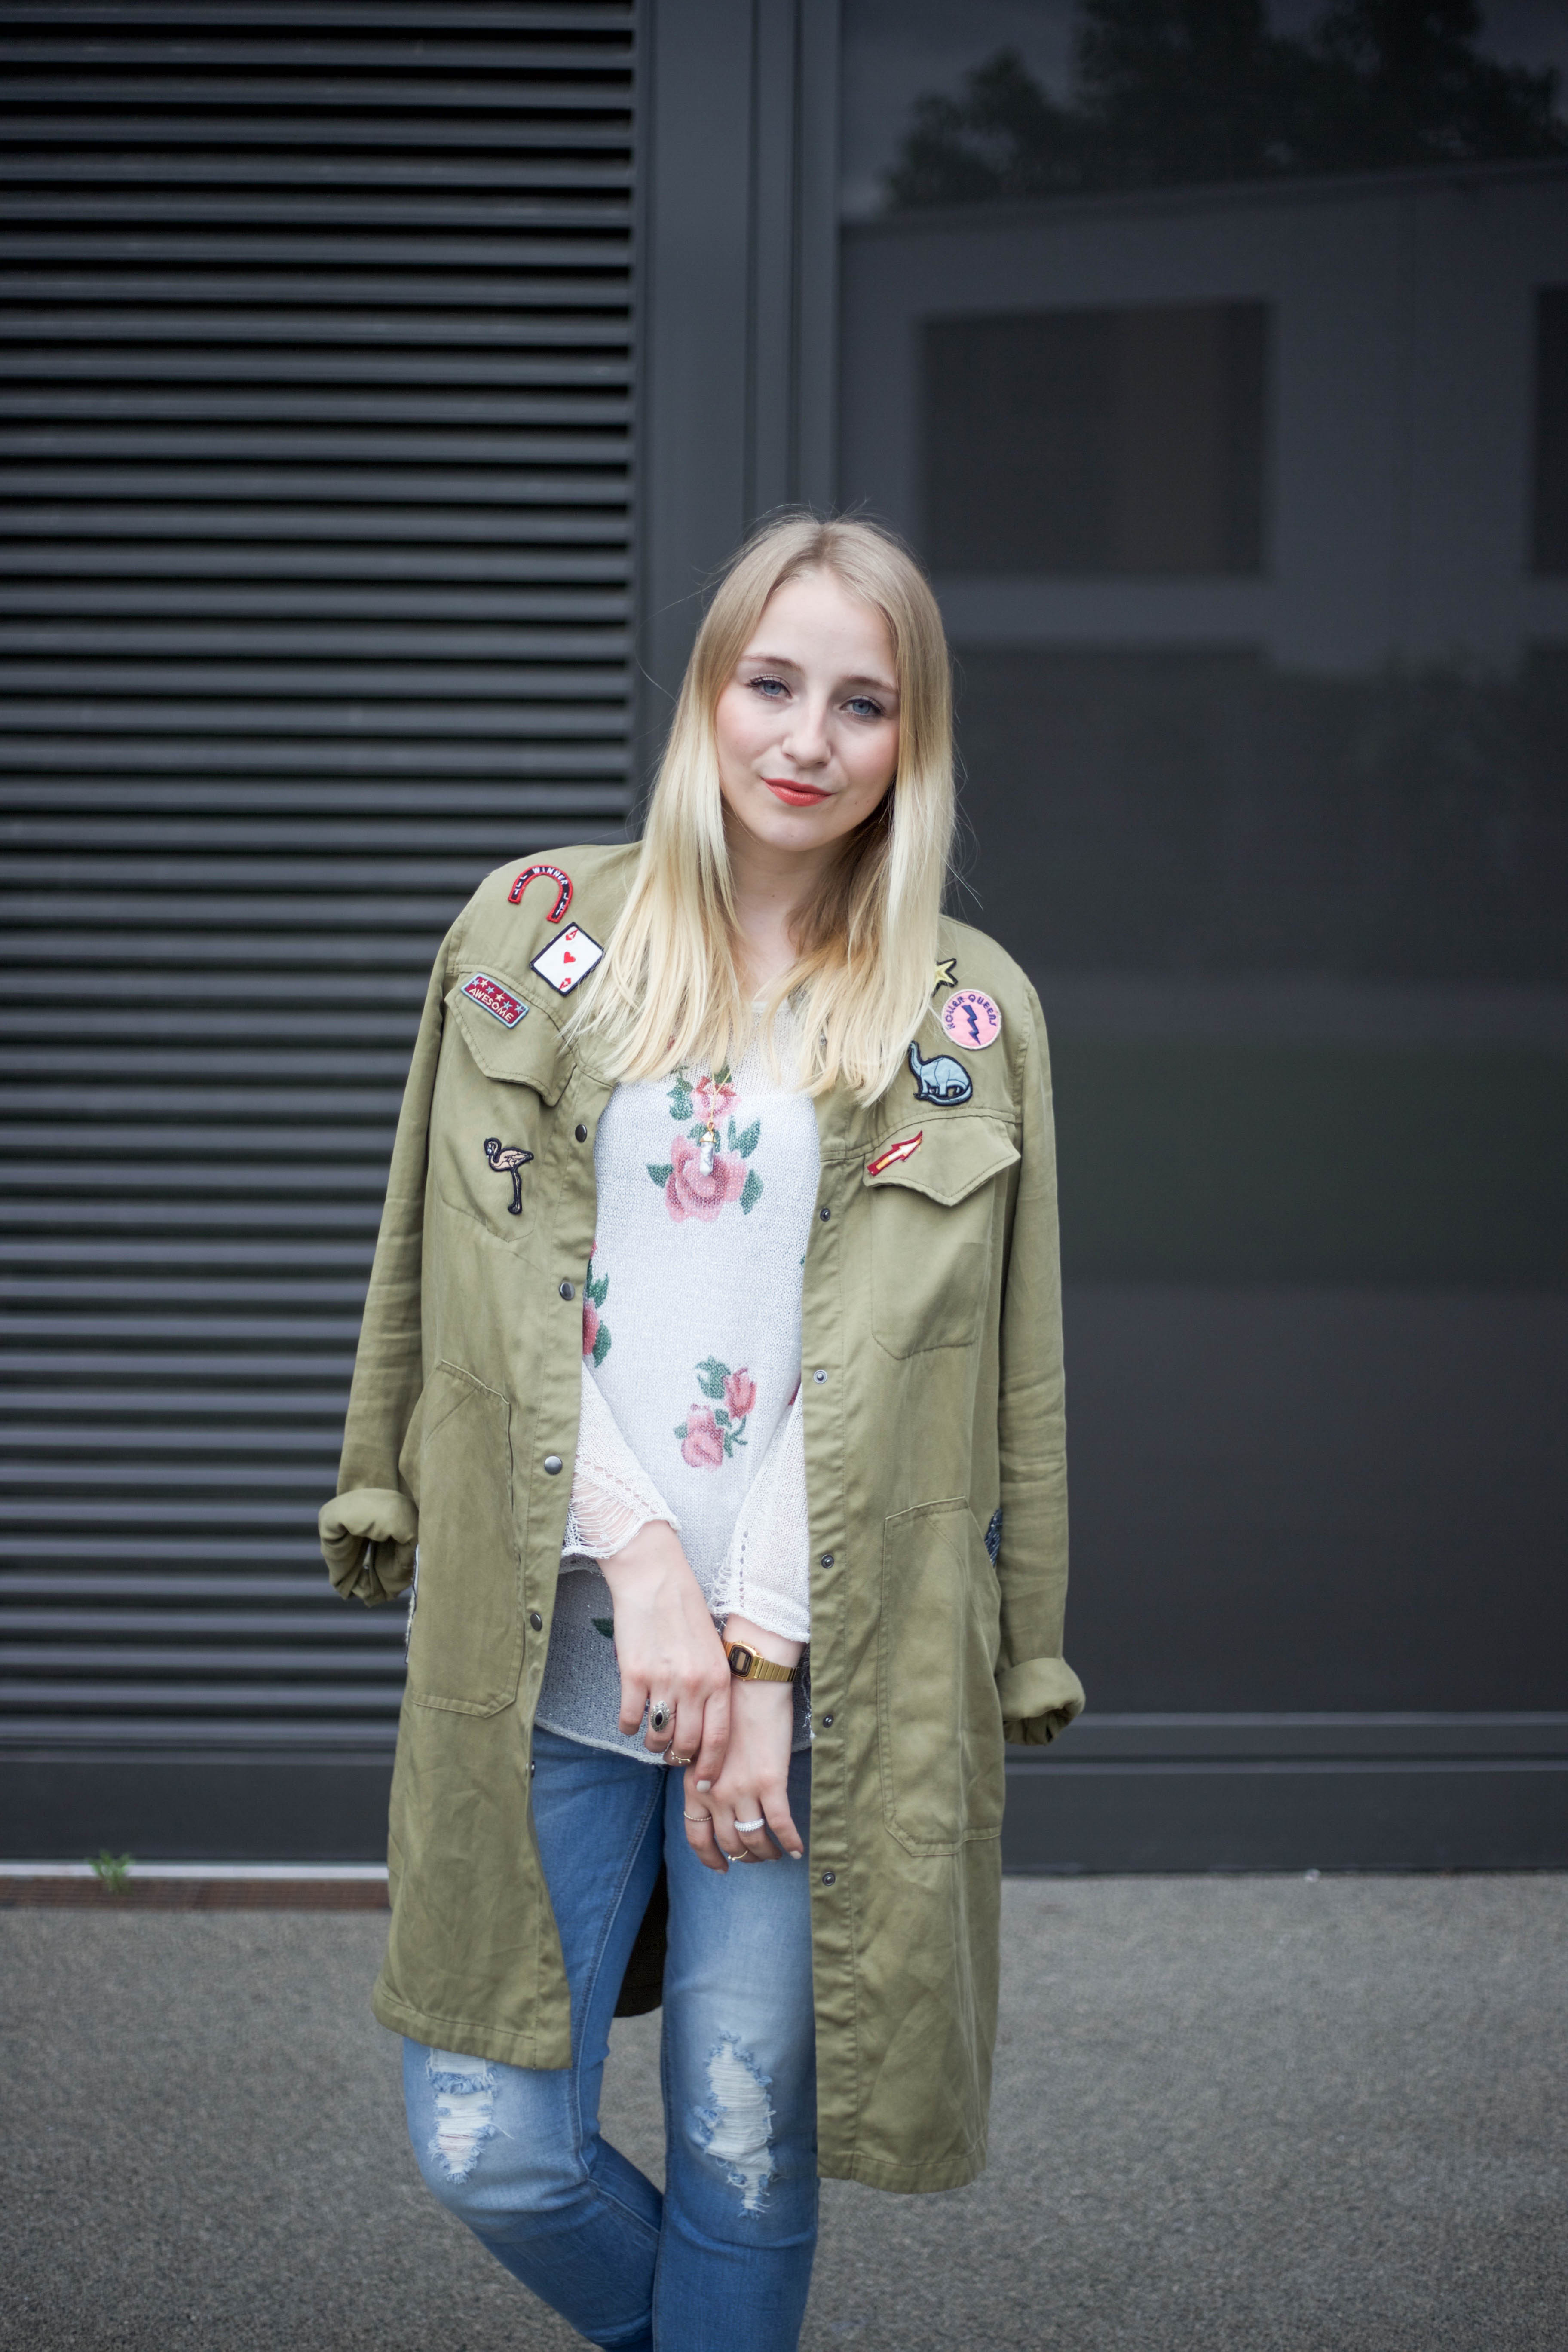 roland-schuhe-trendpage-outfit-jacke-patches-ripped-jeans_9430